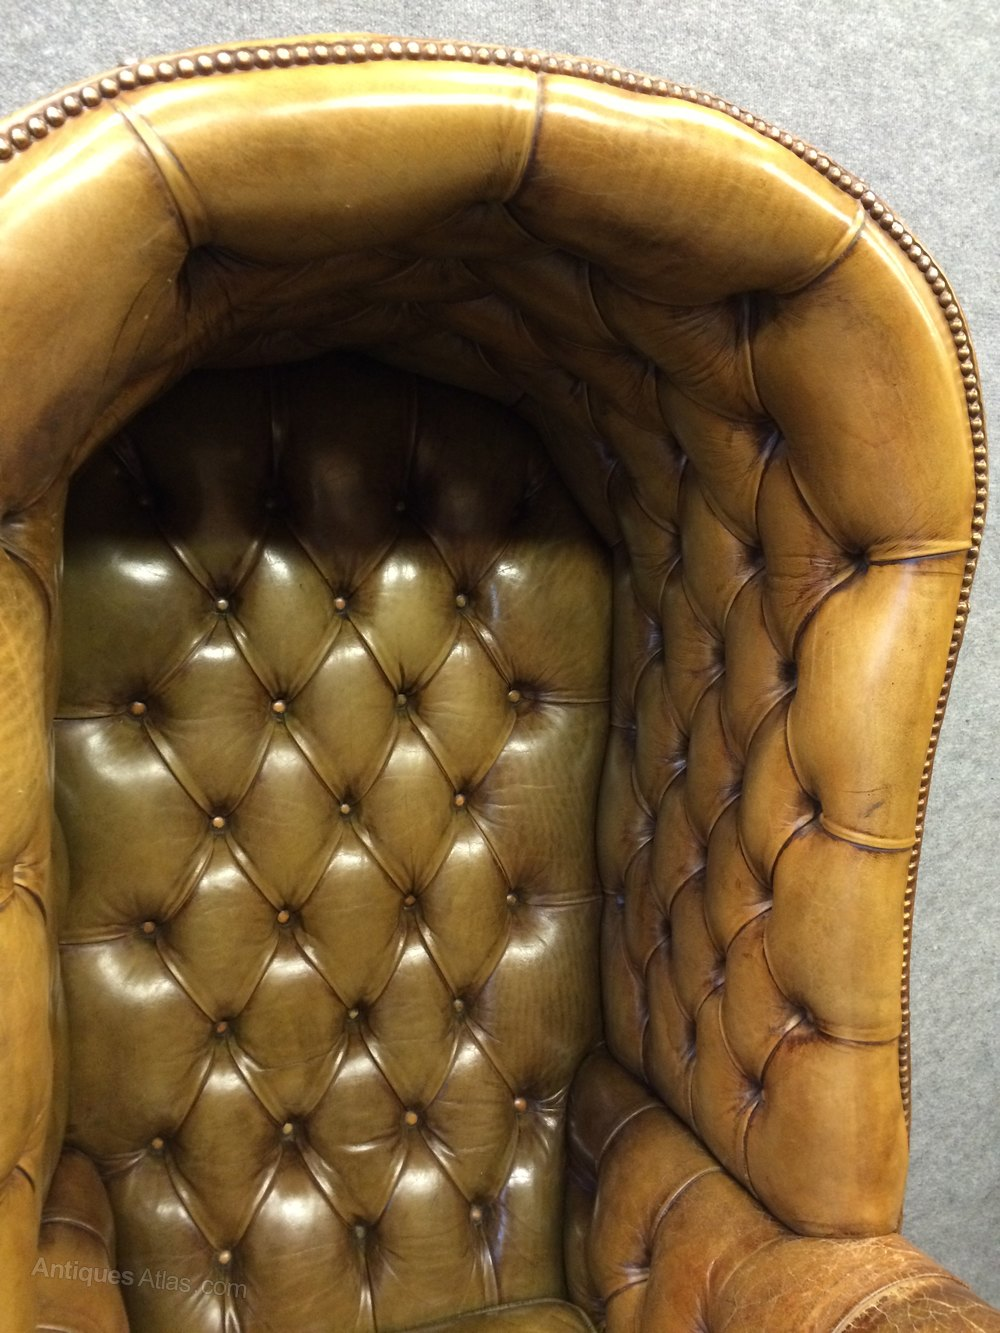 tan leather chair sale swing online in india old hall porter's - antiques atlas